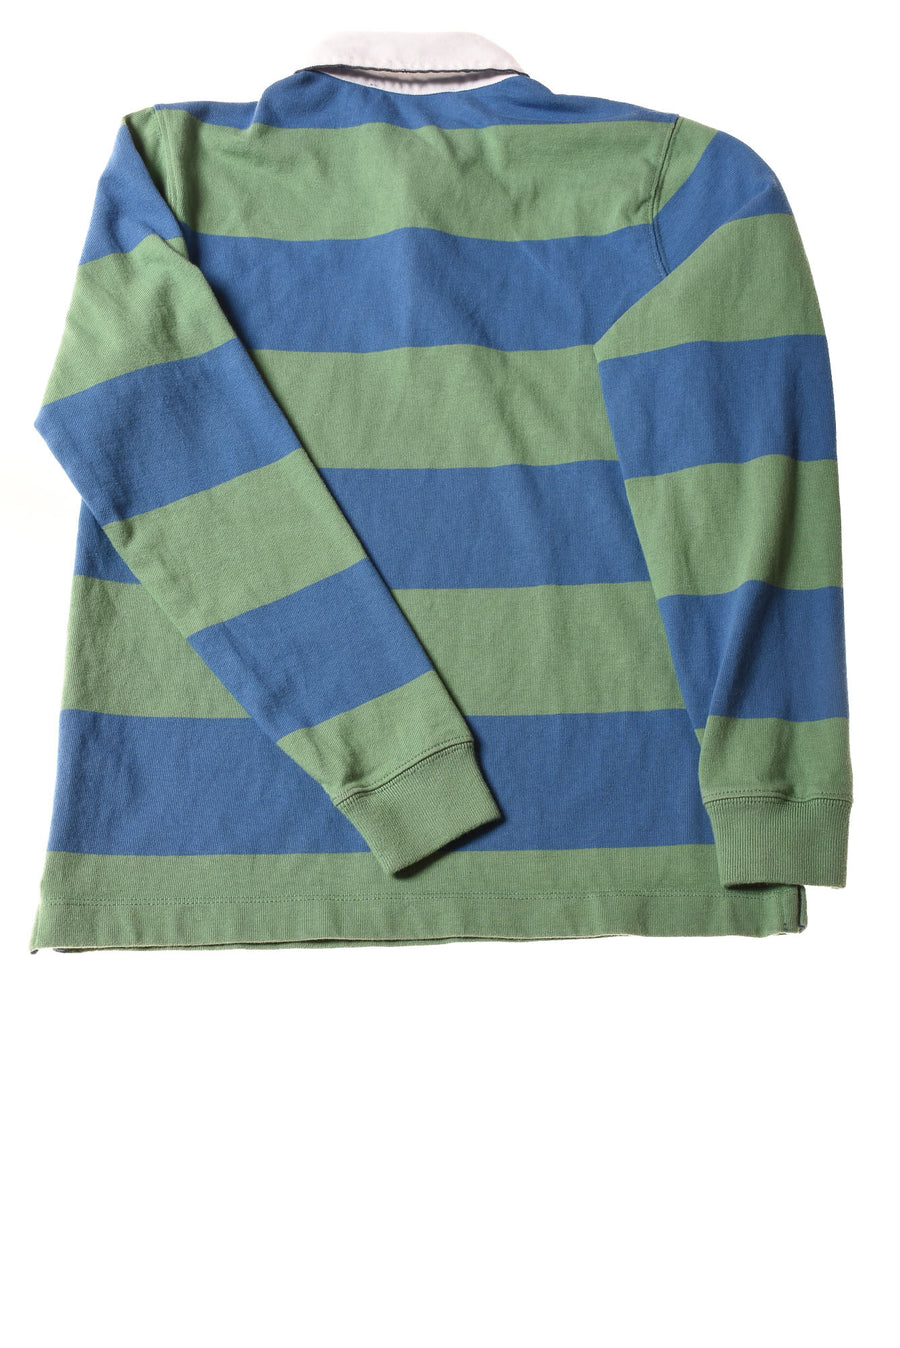 USED Vineyard Vines Boy's Shirt Medium Green & Blue / Striped